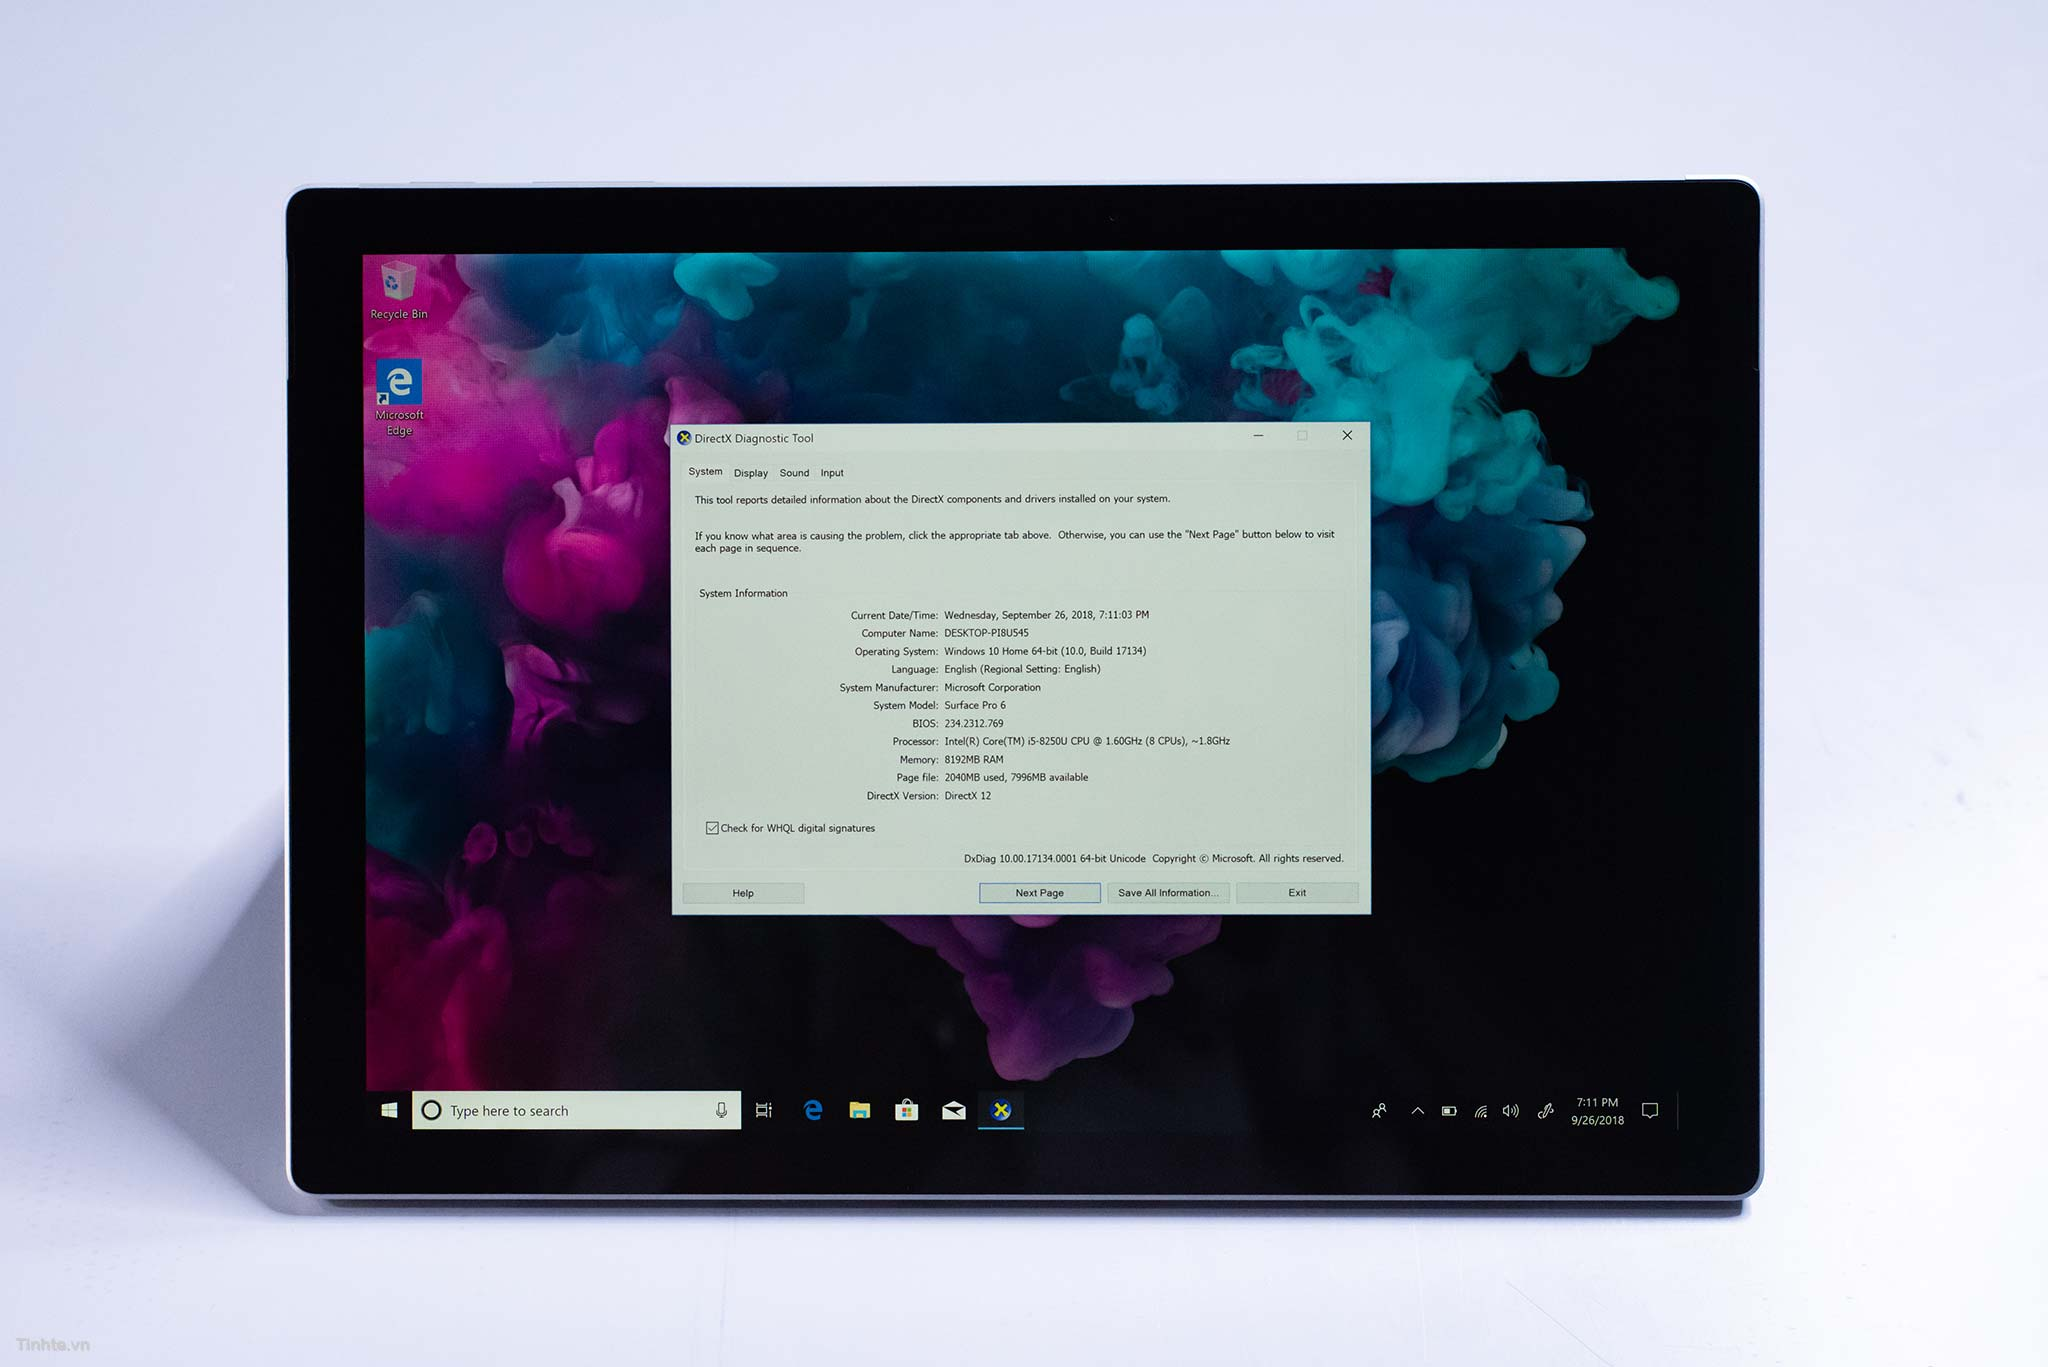 Posible Surface Pro 6 aparece en video sin apenas novedades [Fake]